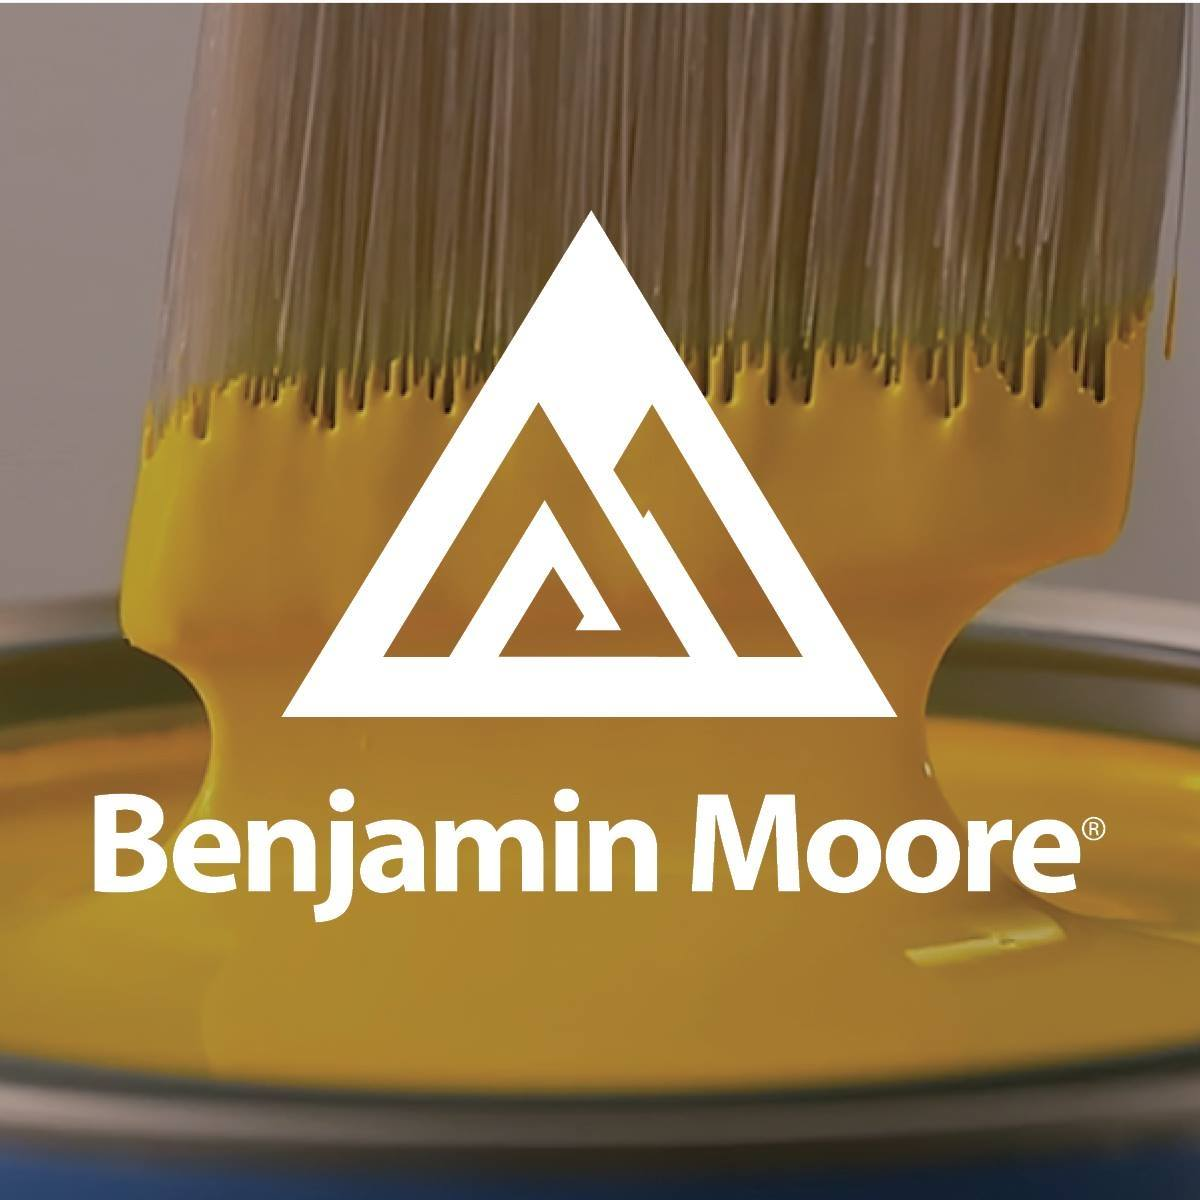 Benjamin Moore Paints Painting Example